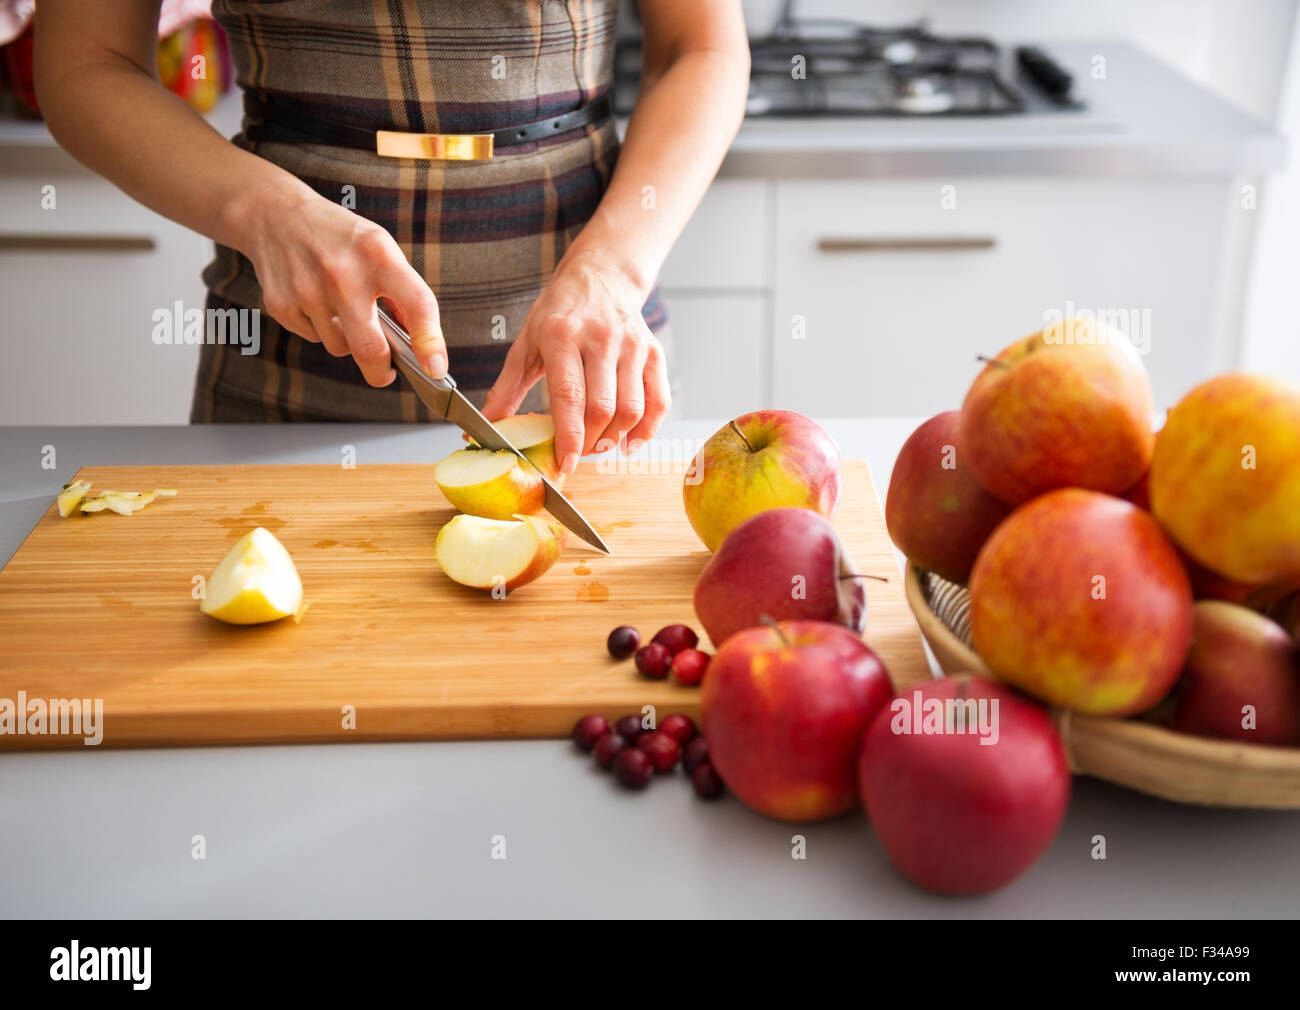 cutting; cut; woman; female; hands; apple; fruit; health; healthy; natural; board; anonymous; cutting board; applesauce; - Stock Image